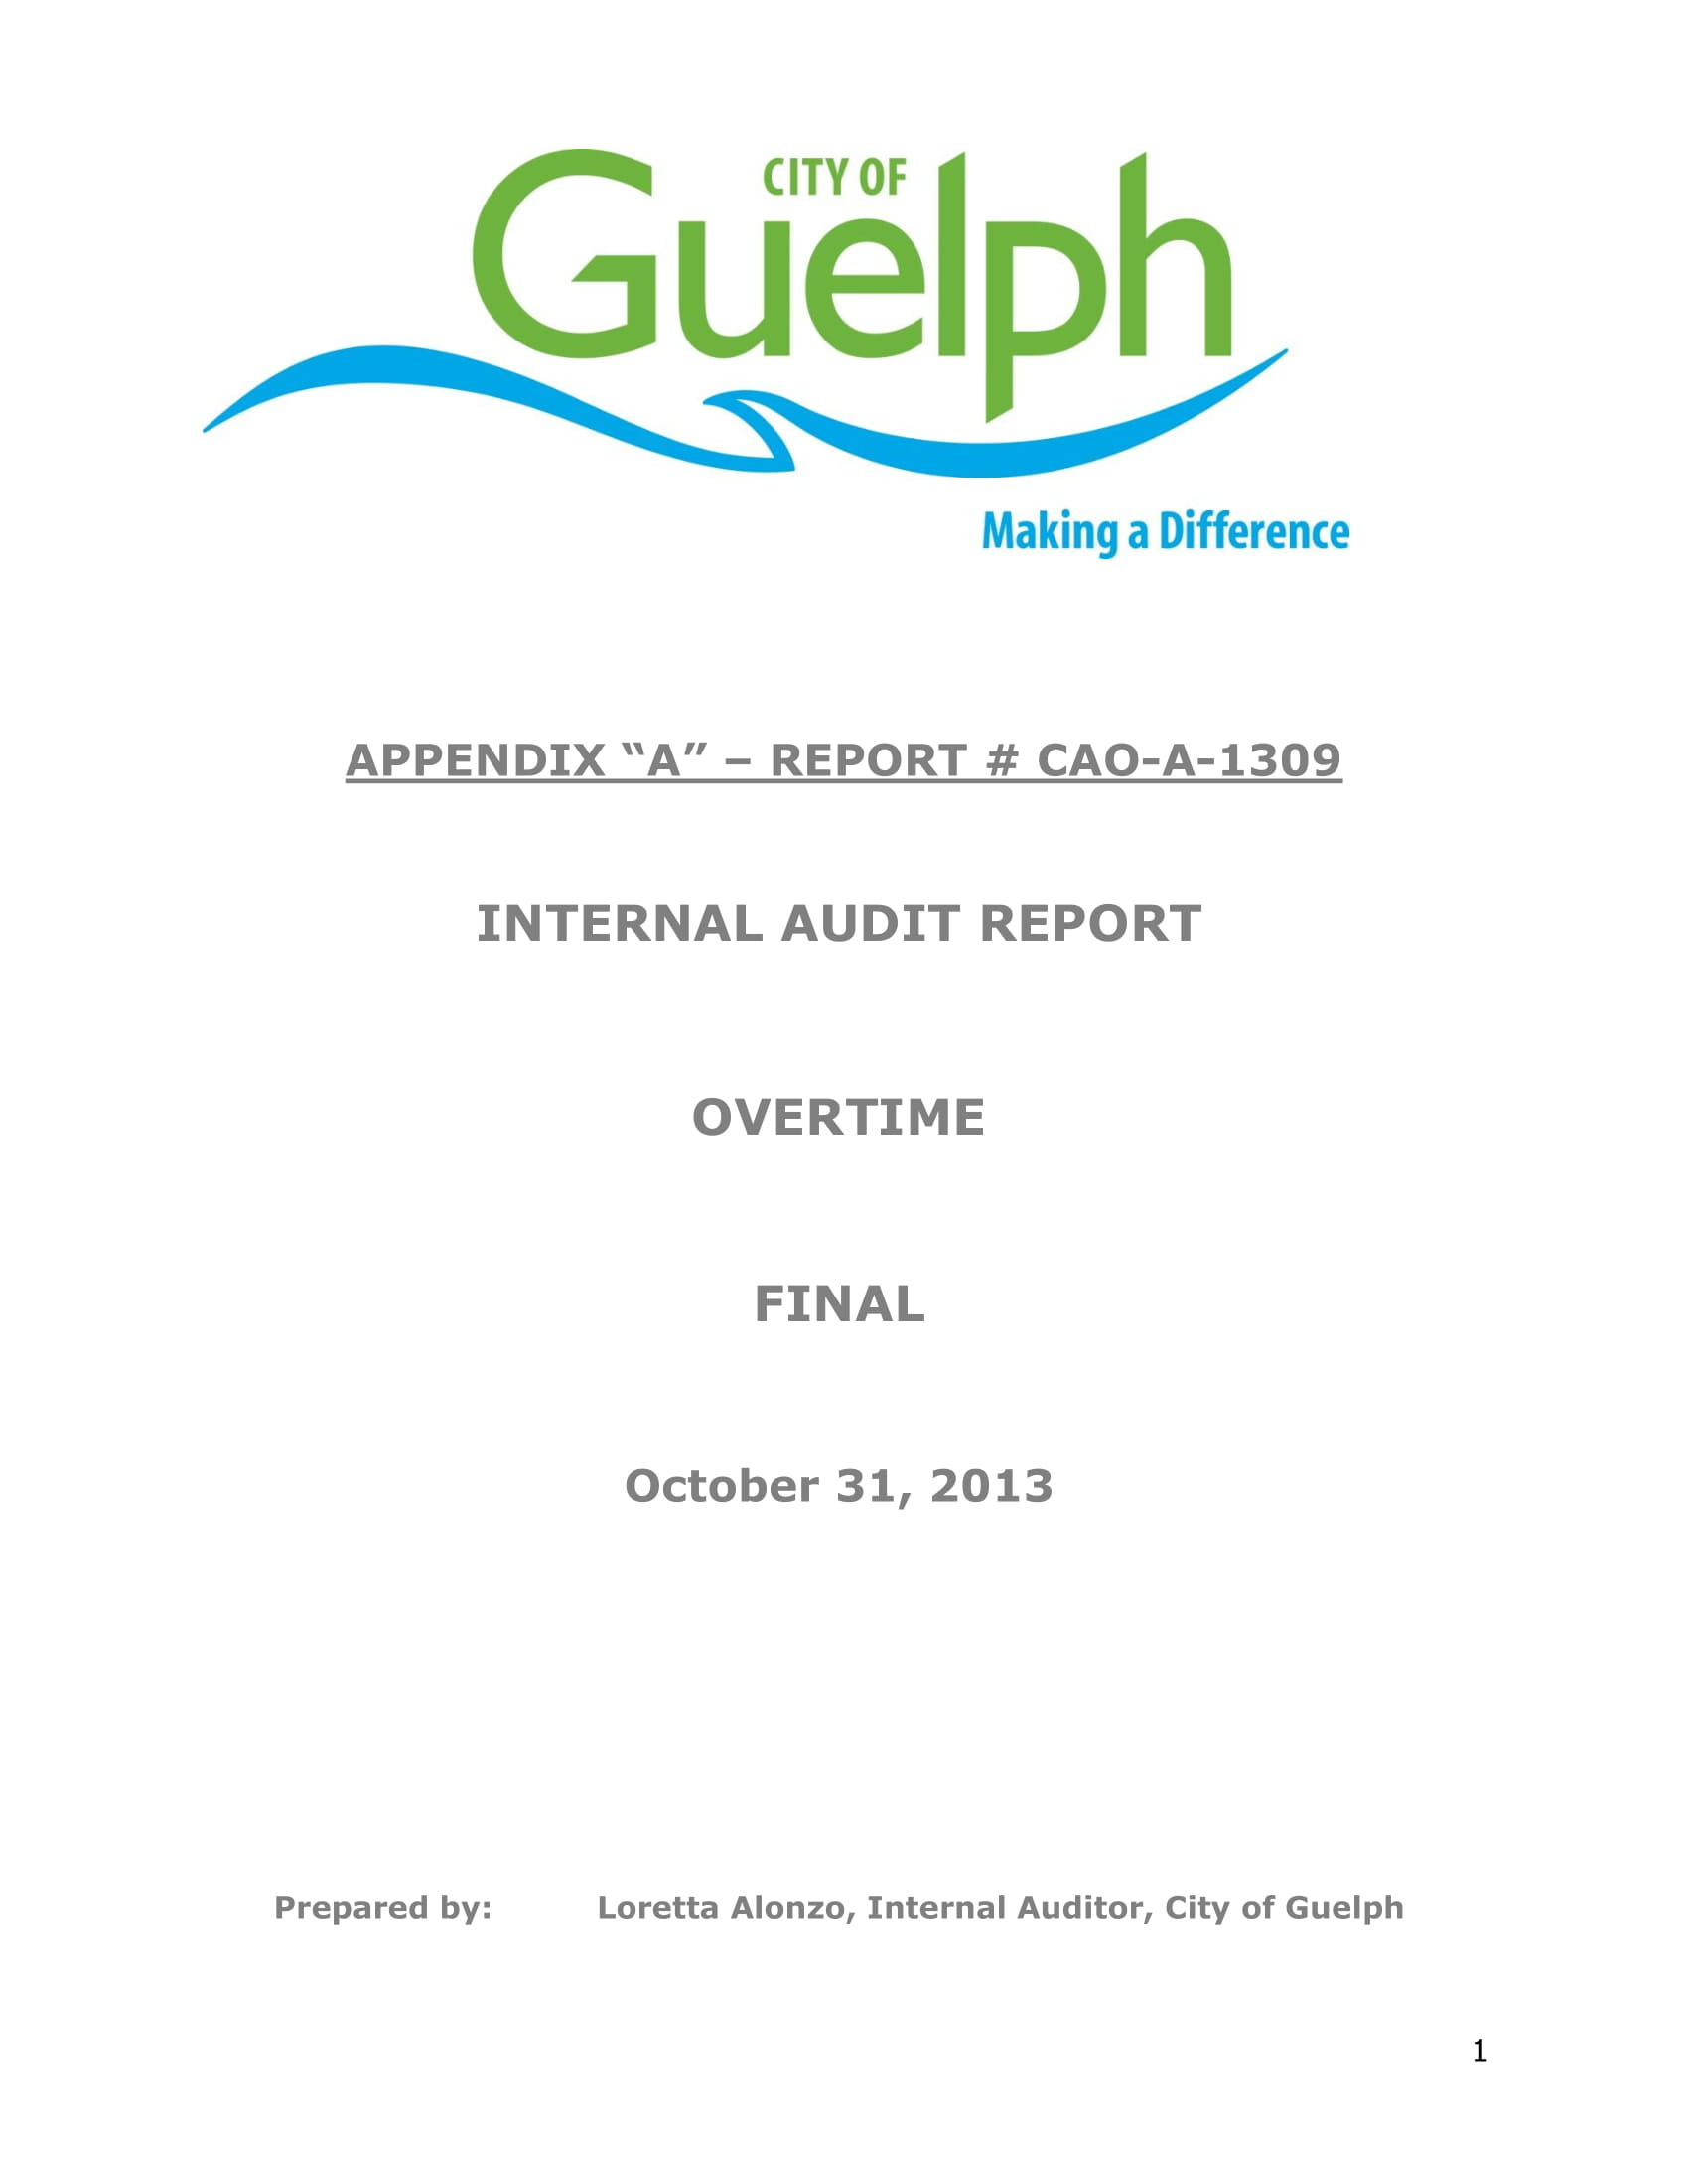 final internal audit report for overtime example